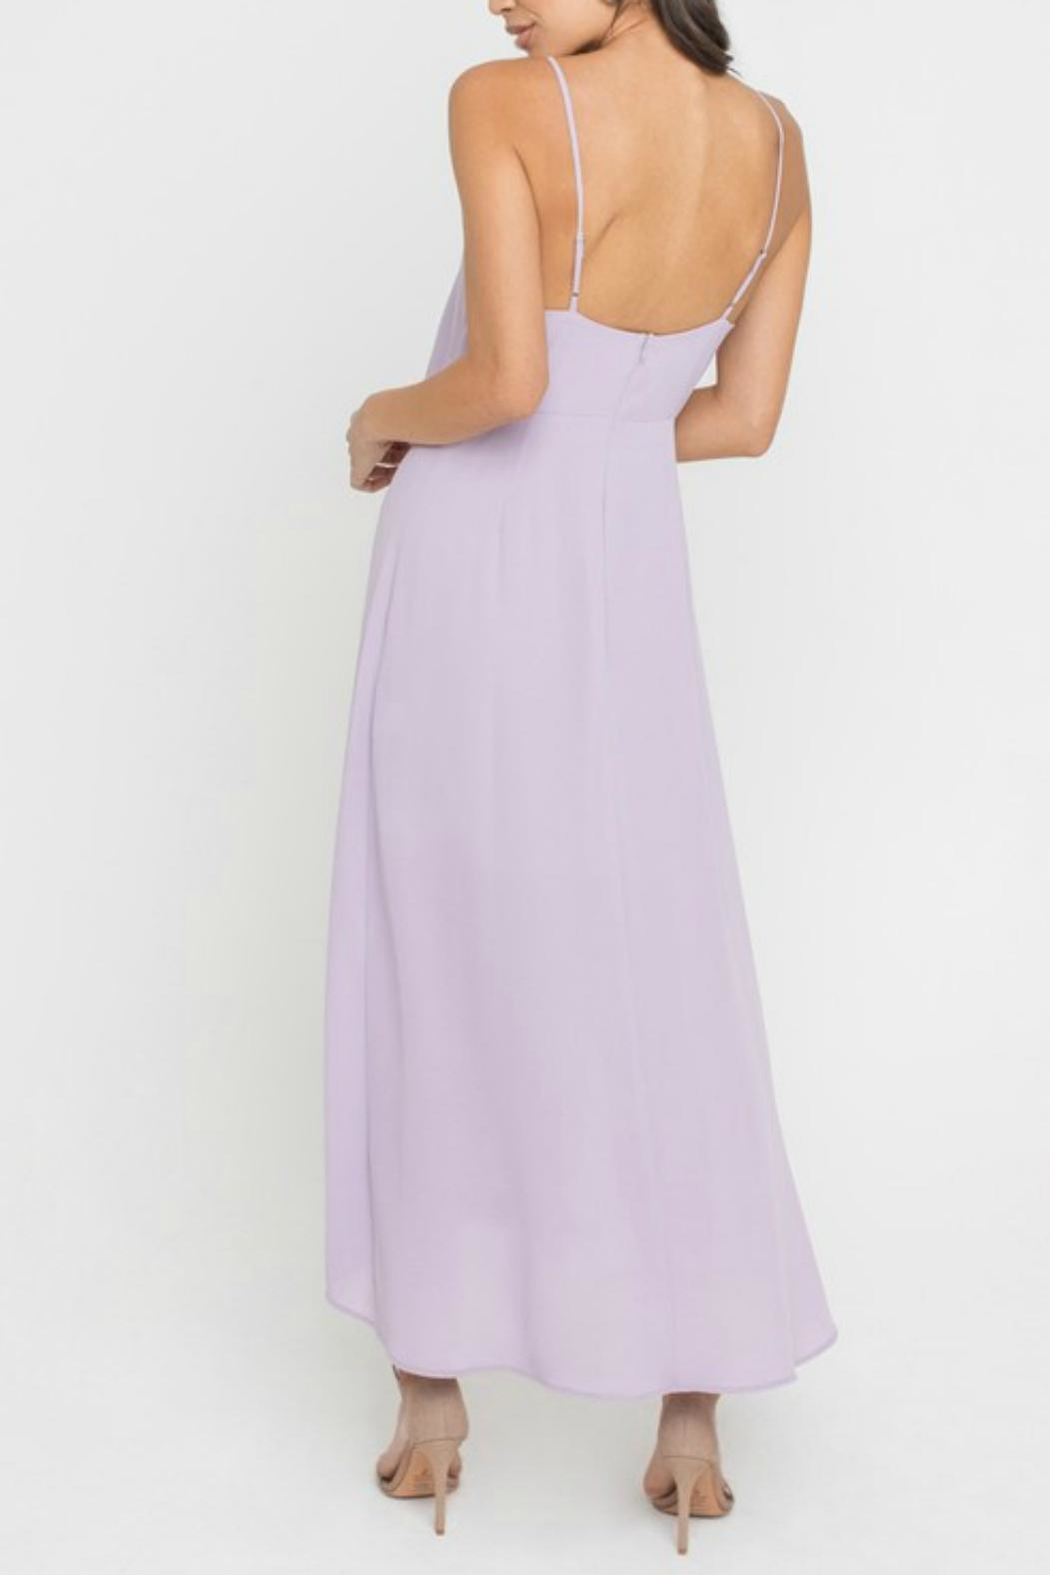 Pretty Little Things Minimalistic Midi Dress - Side Cropped Image